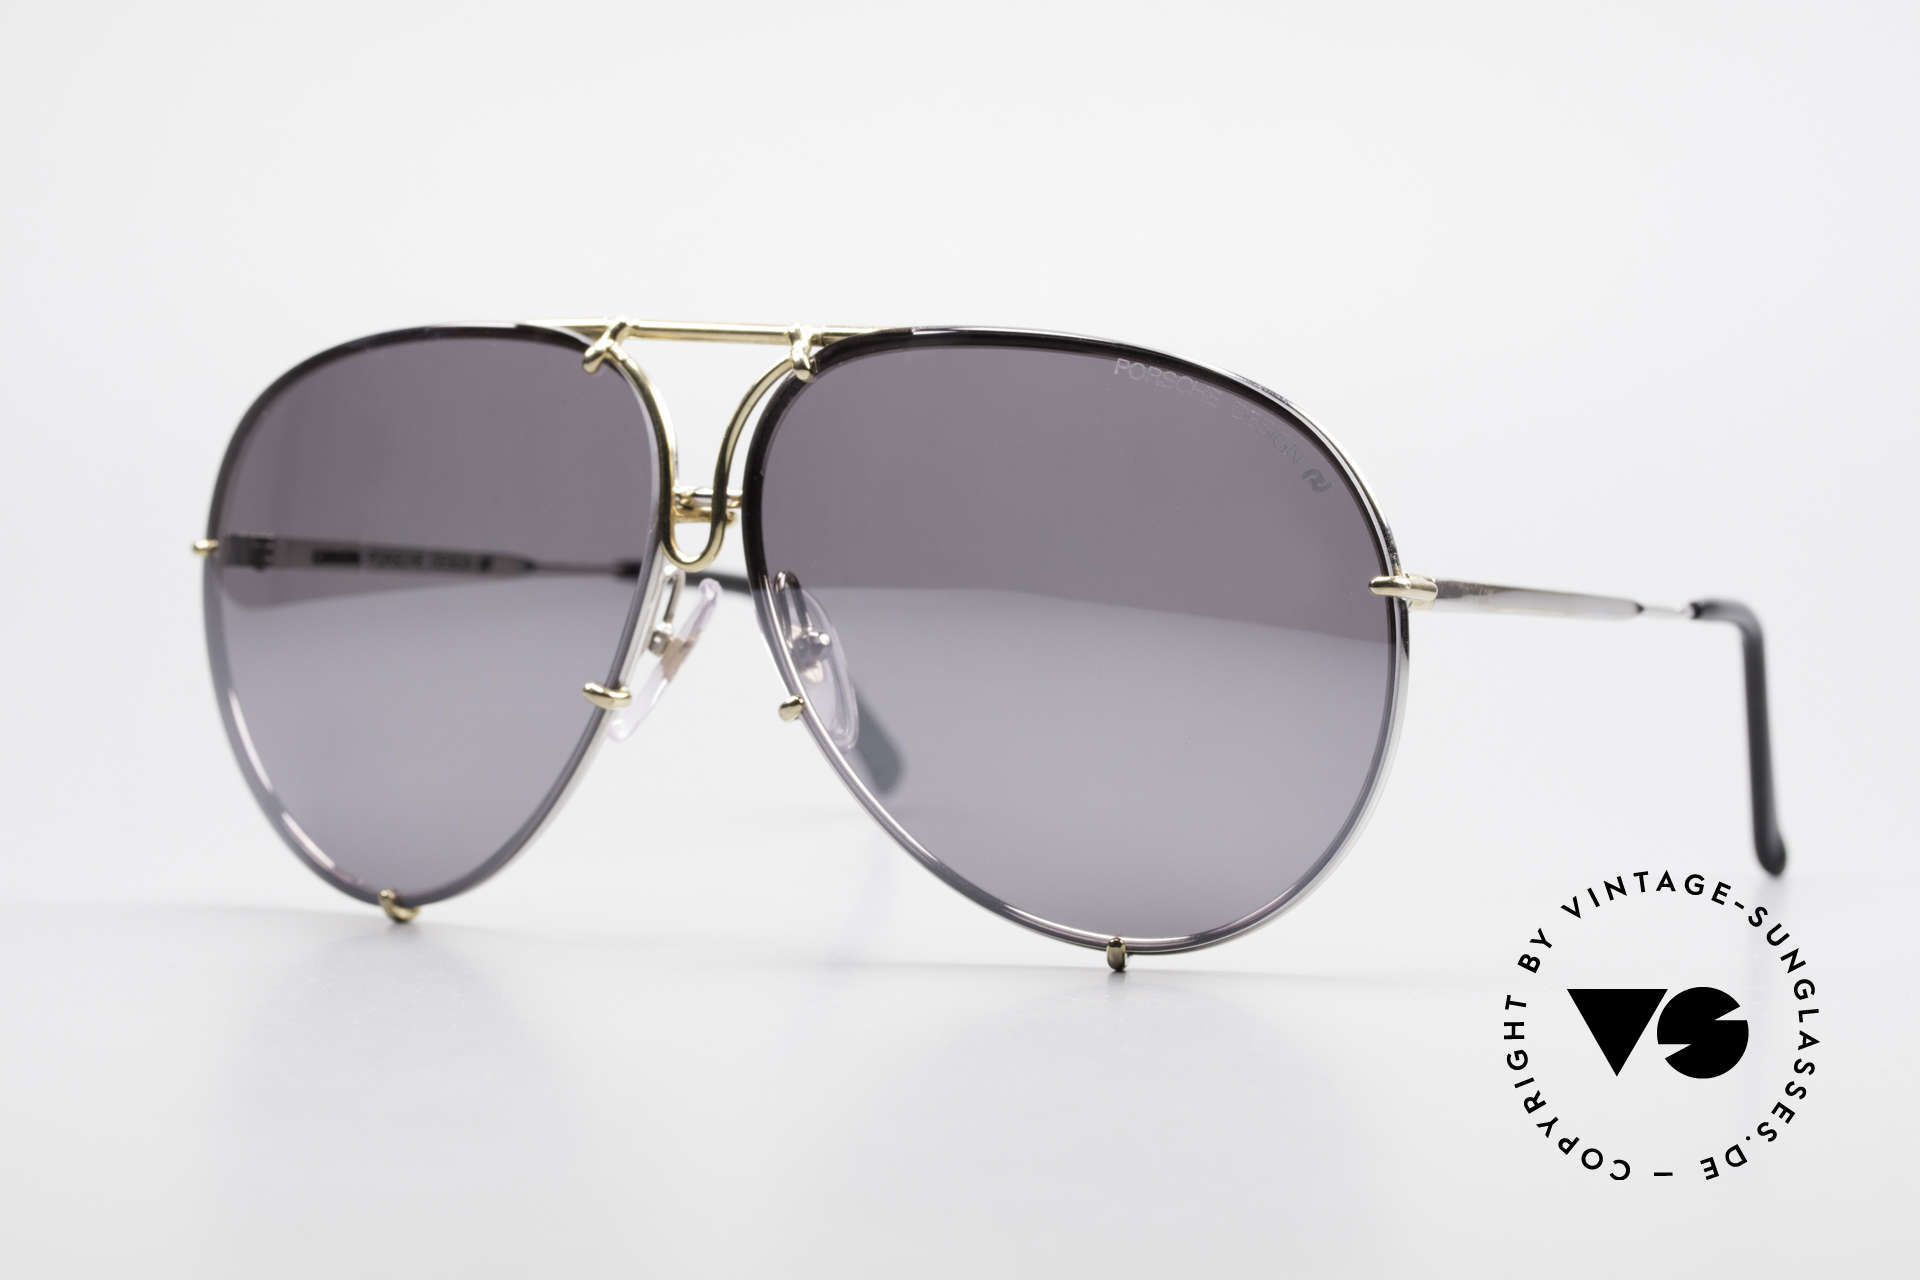 Porsche 5623 Silver Mirrored Sun Lenses, unworn rarity + orig. Porsche case (collector's item), Made for Men and Women